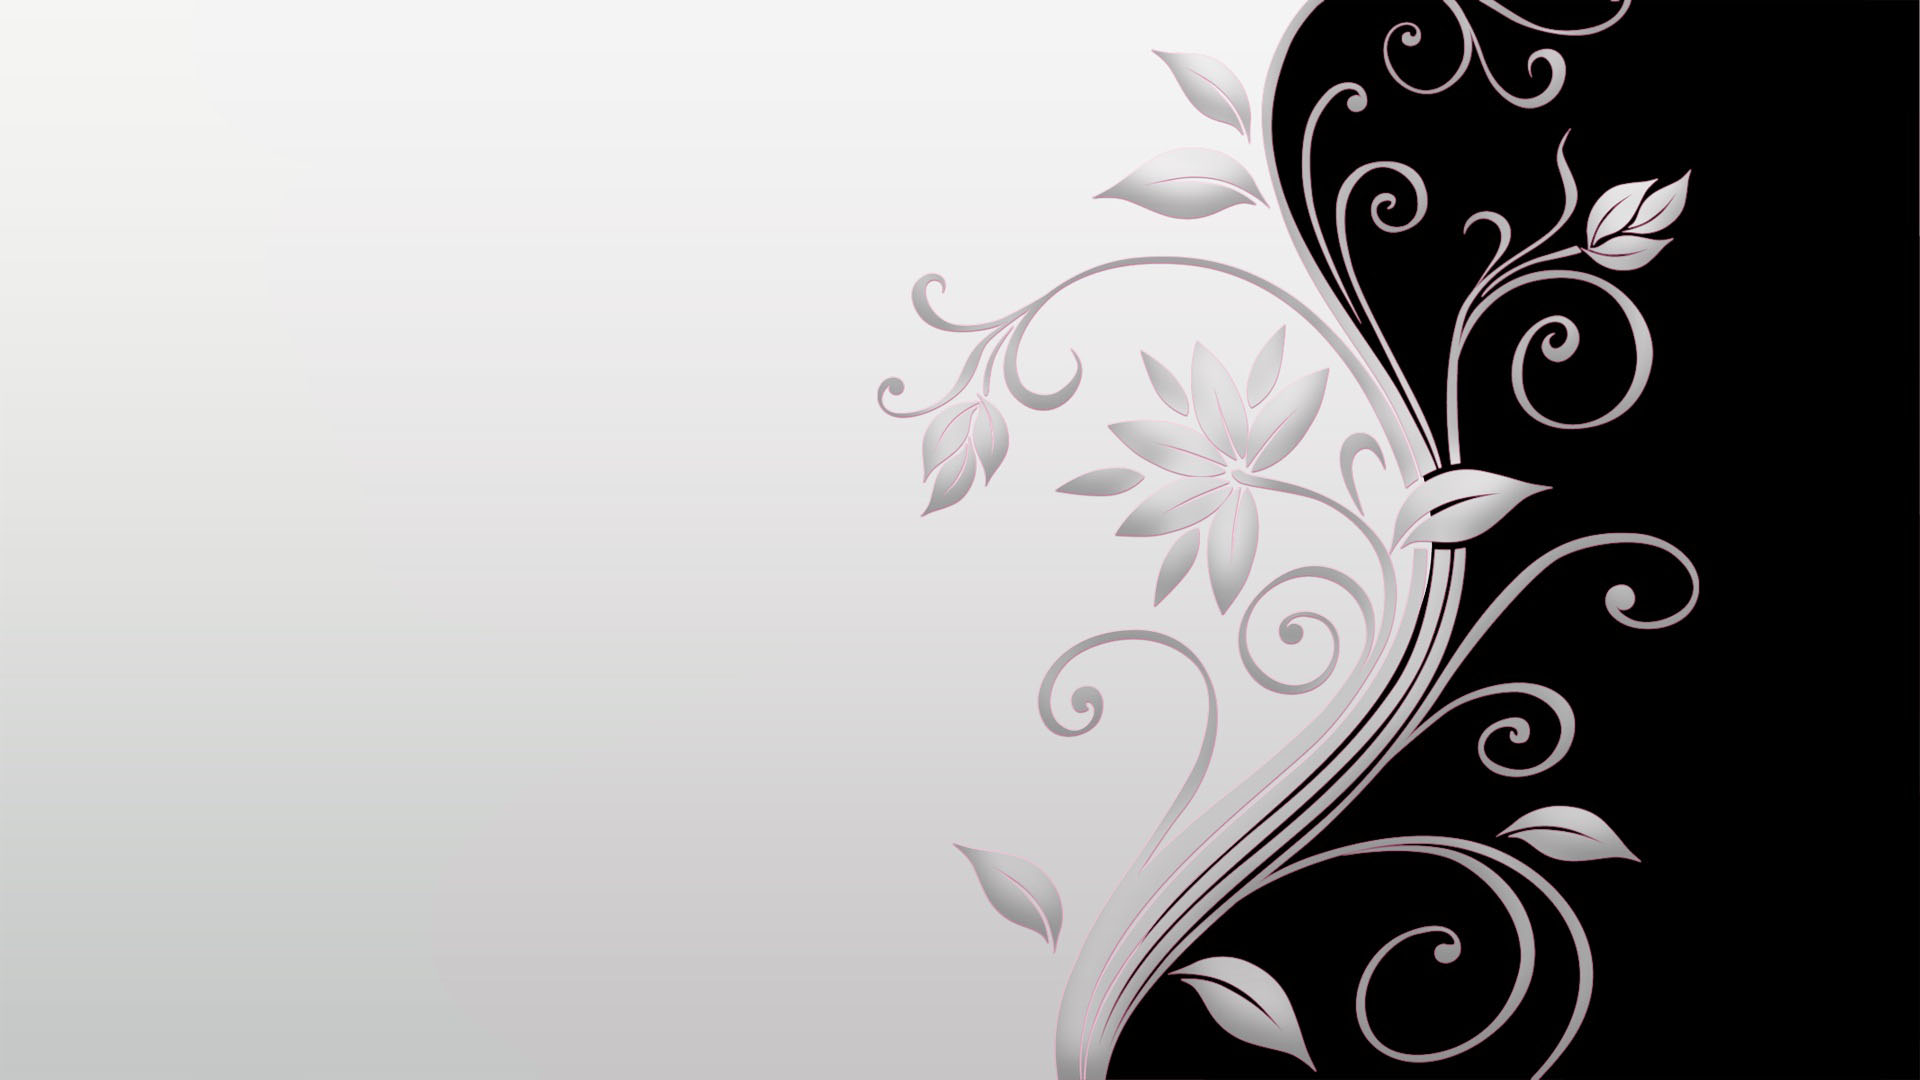 Black And White Design Wallpapers Hd Page 2 Of 3